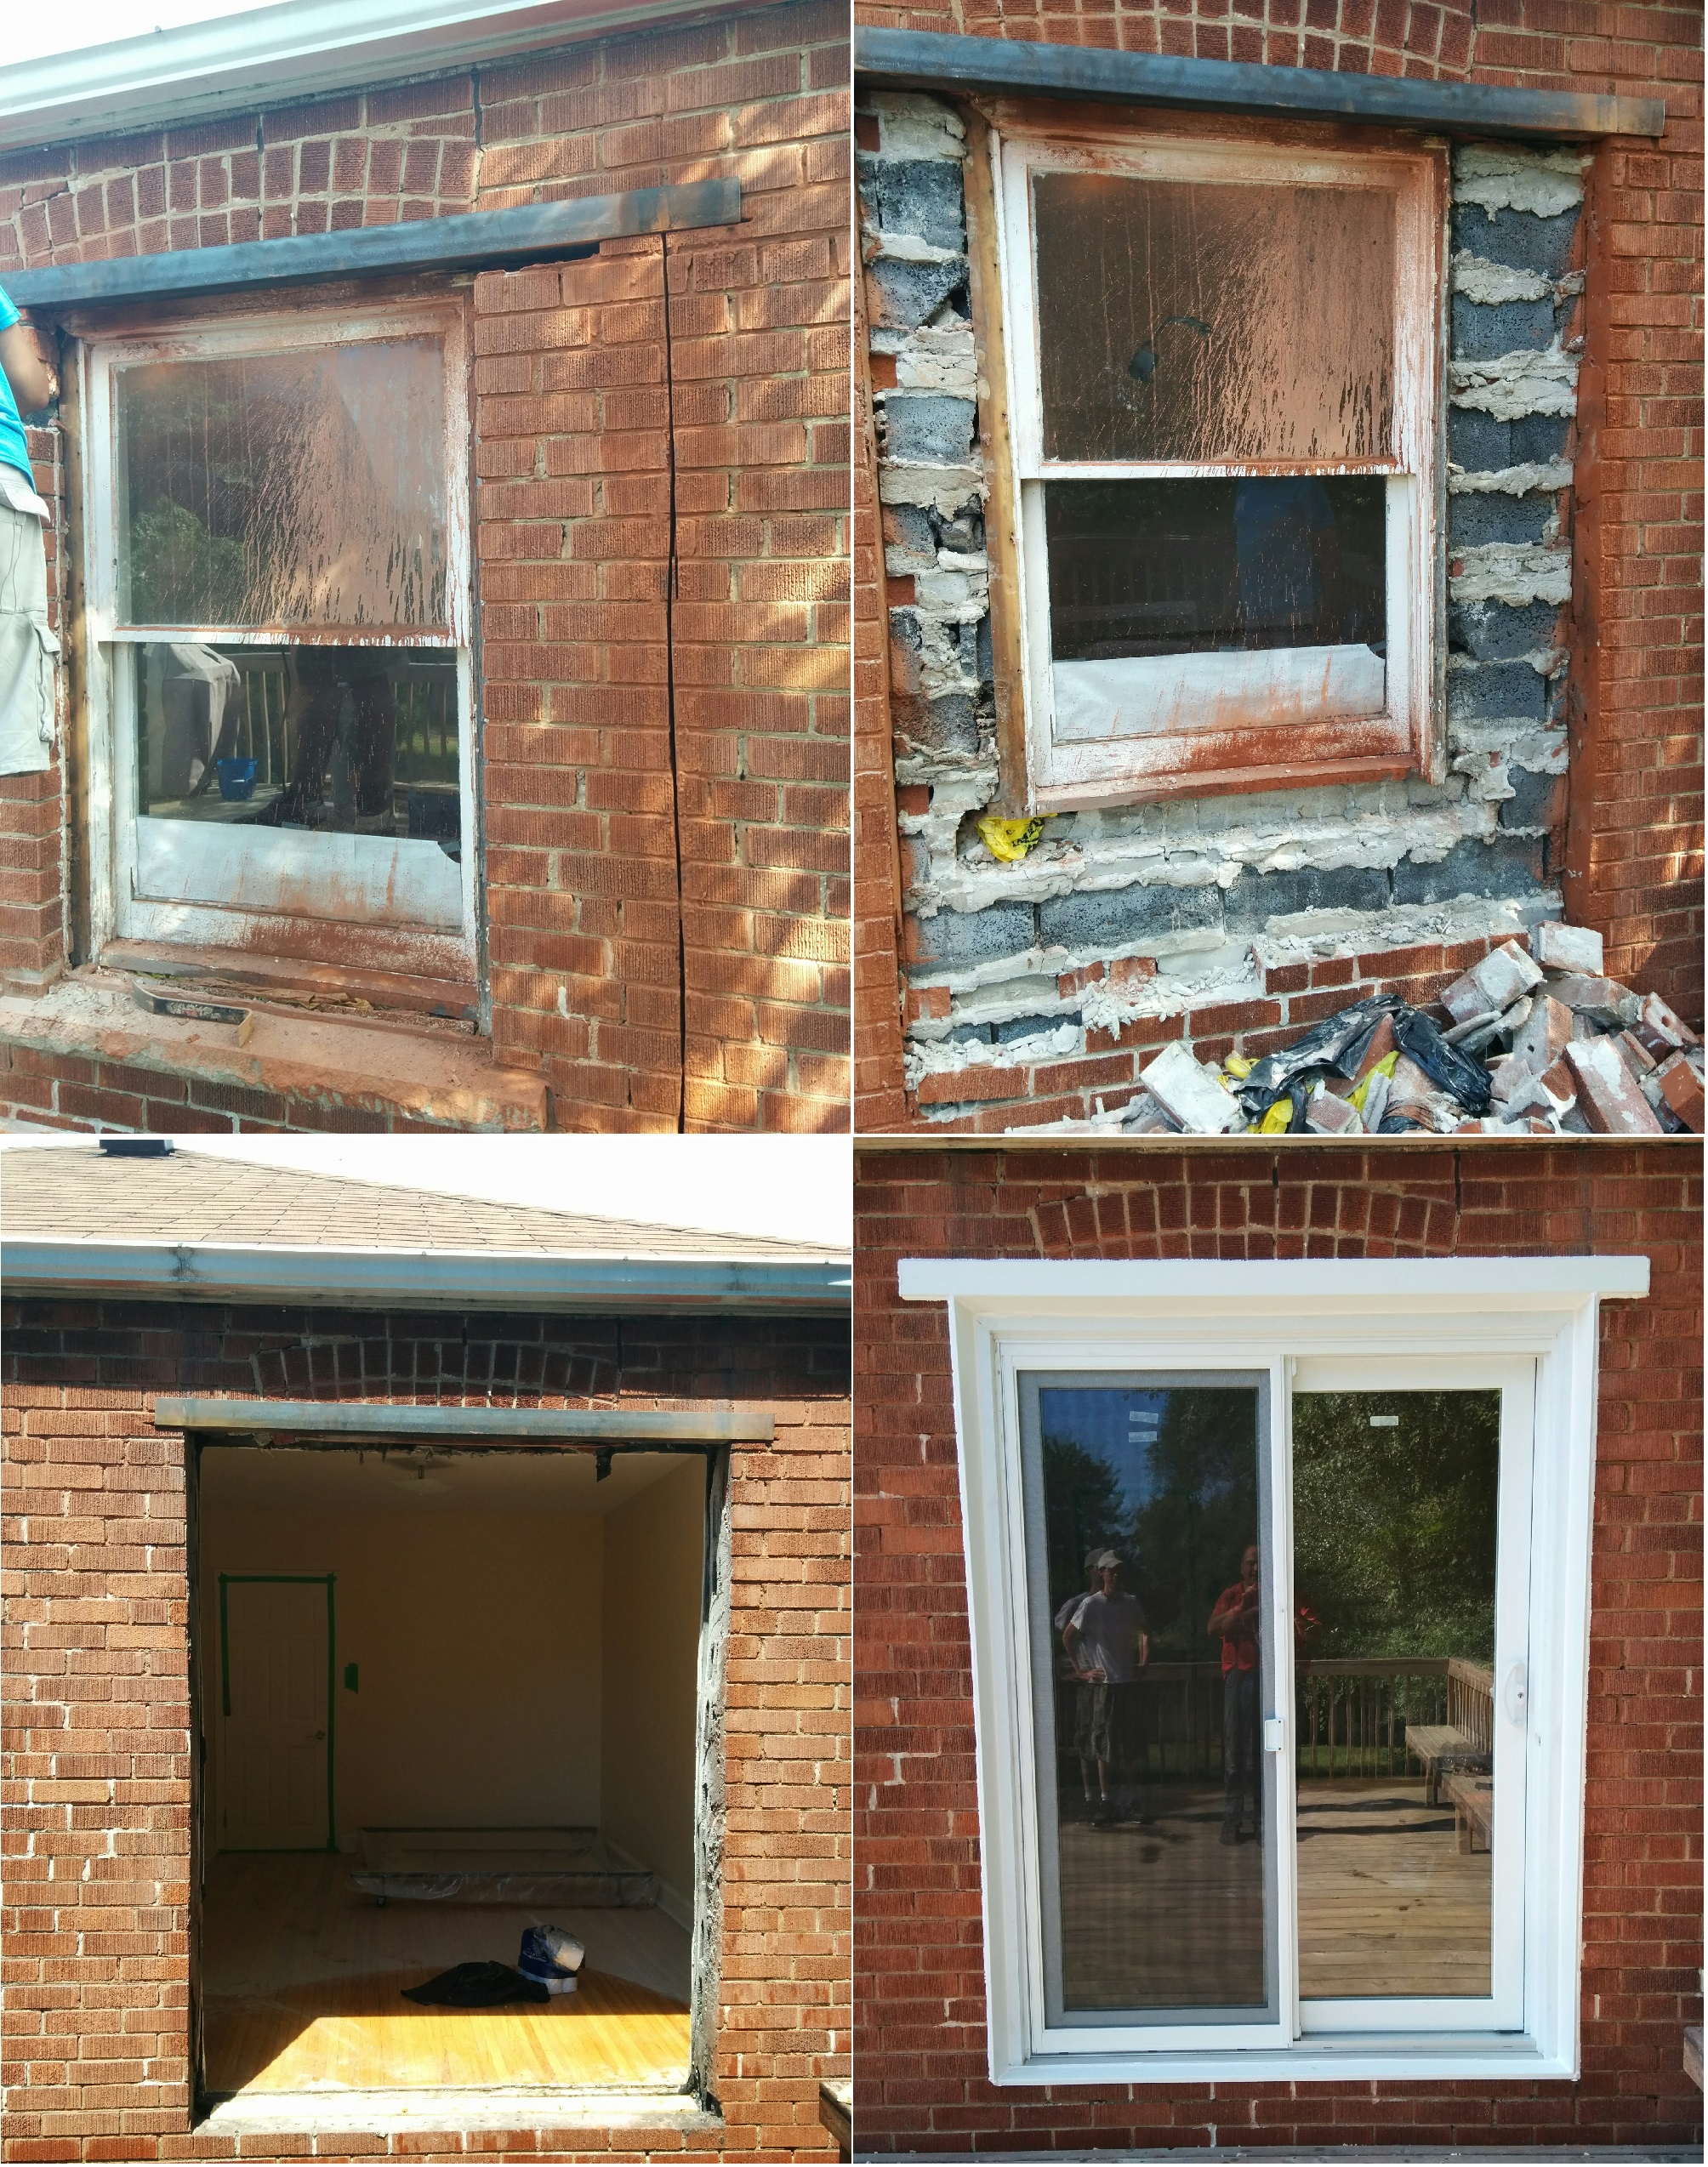 Cut our brick and block. Install a metall Lintel to create a new doorway in an existing brick and block wall. Double brick. Sliding door installation. Aluminum flashing